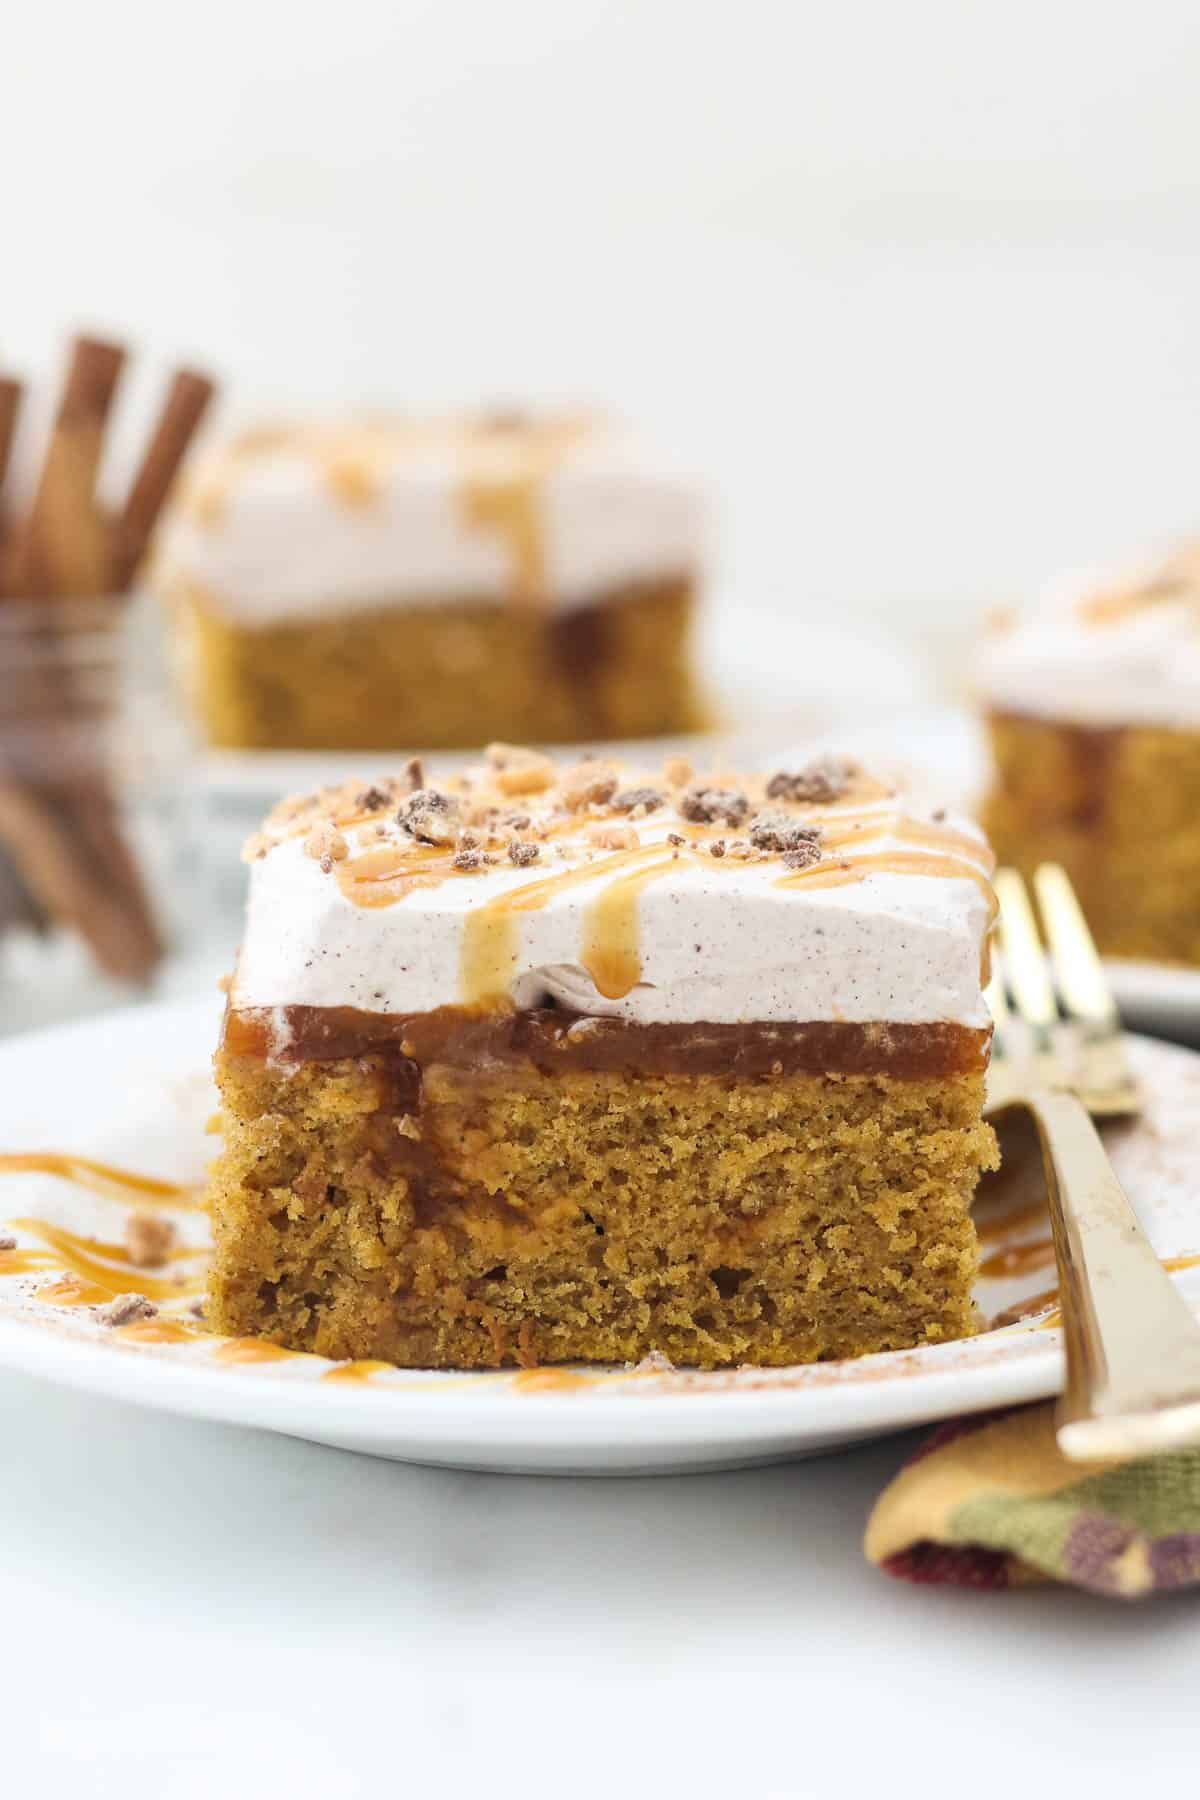 A head on shot of a slice of pumpkin poke cake showing the layers of the cake, and a gold fork laying on the white plate